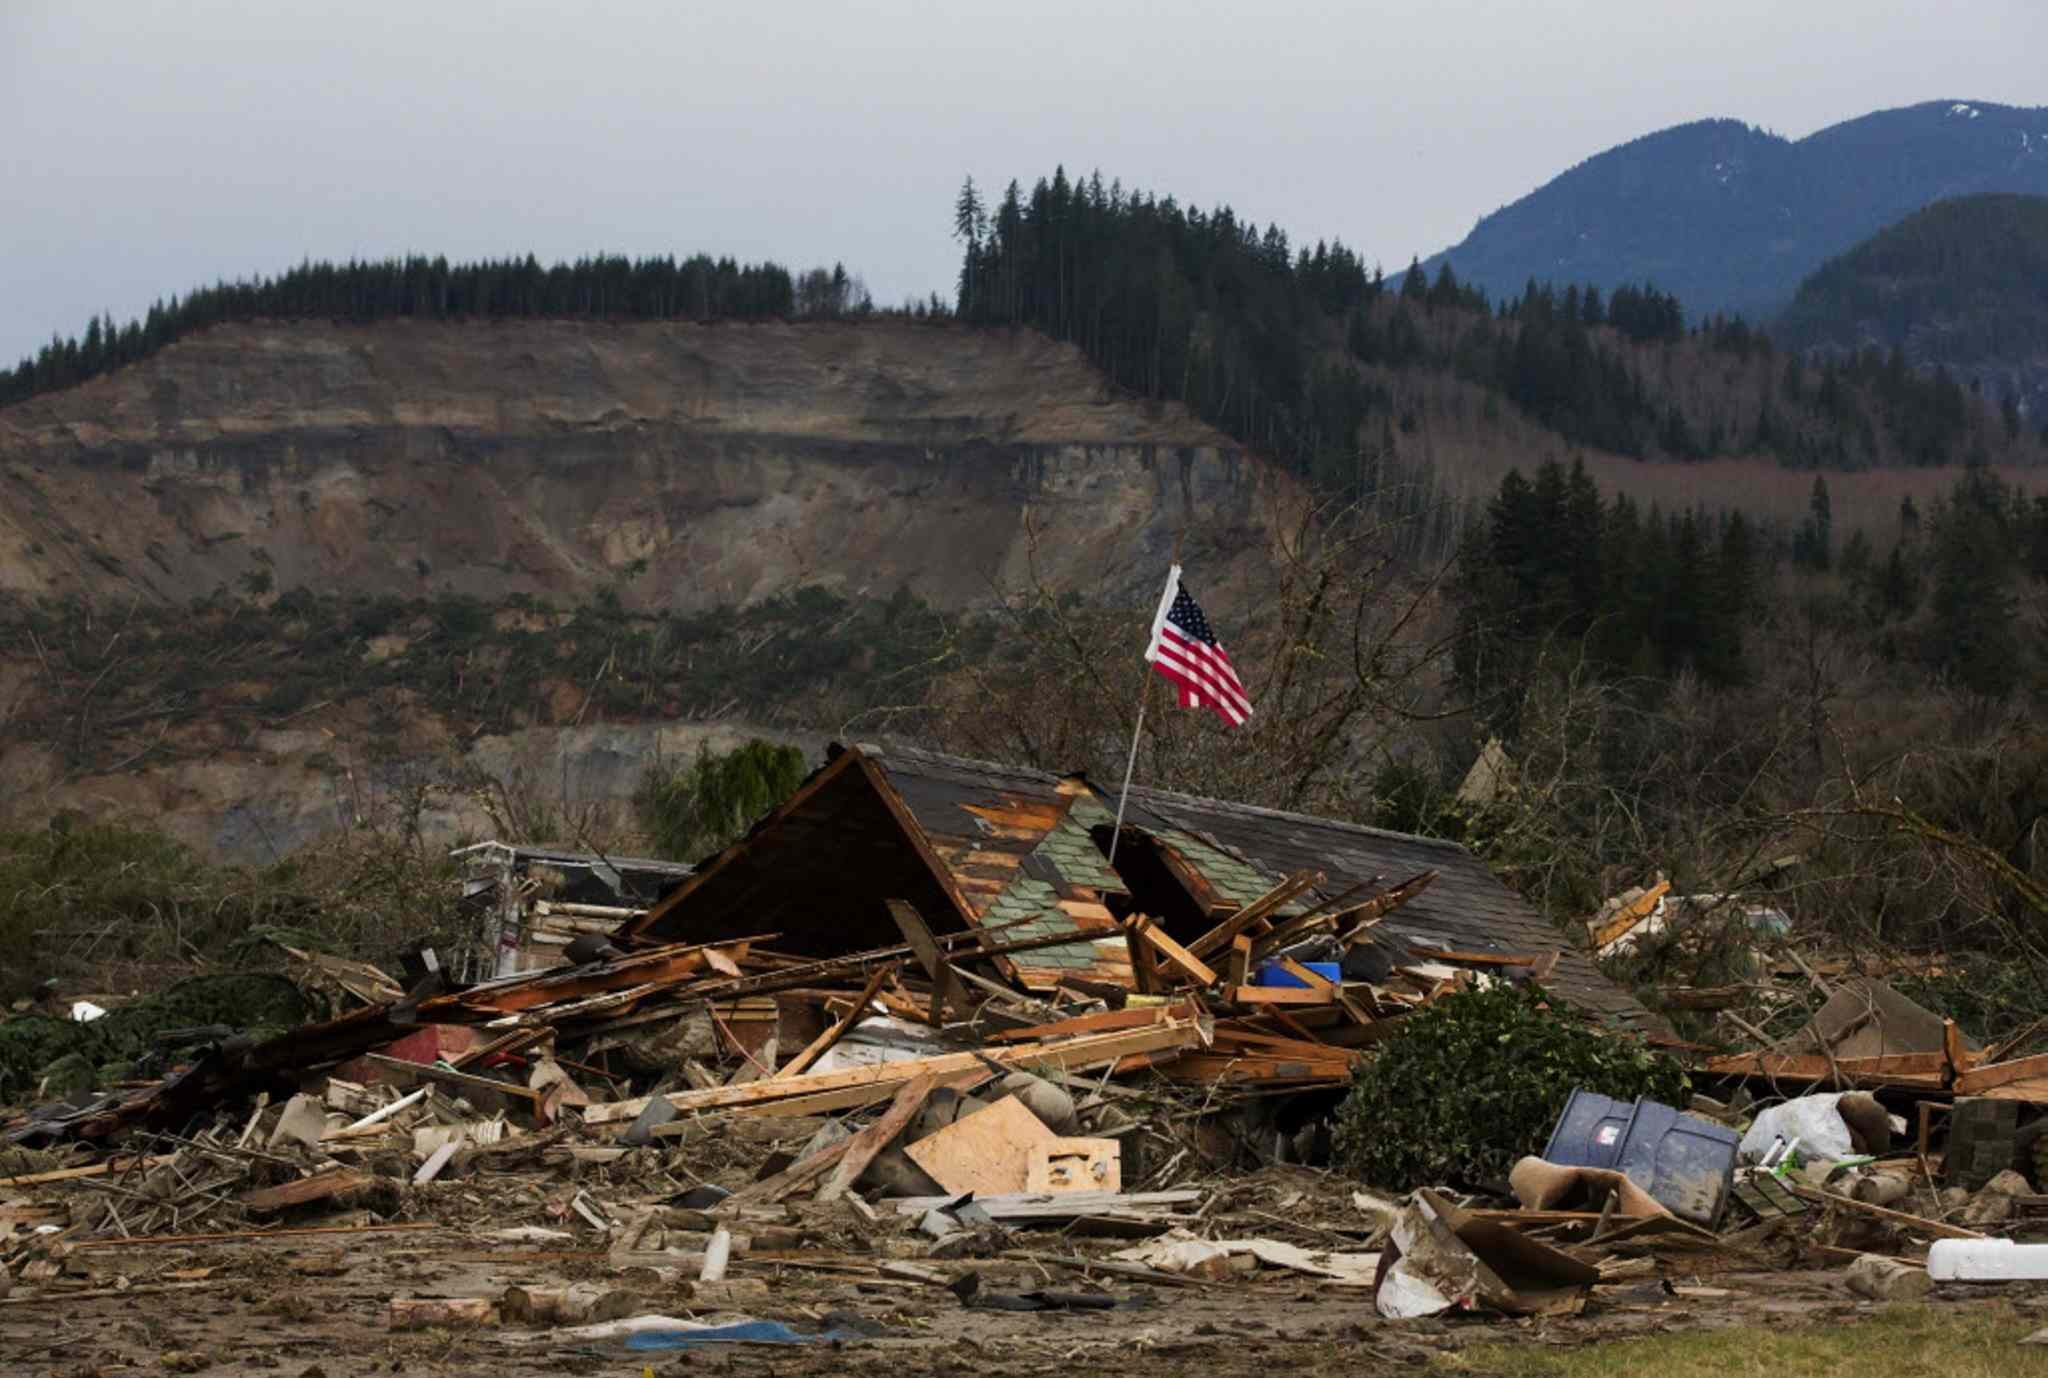 A damaged home sits in the debris field caused by the massive mudslide.